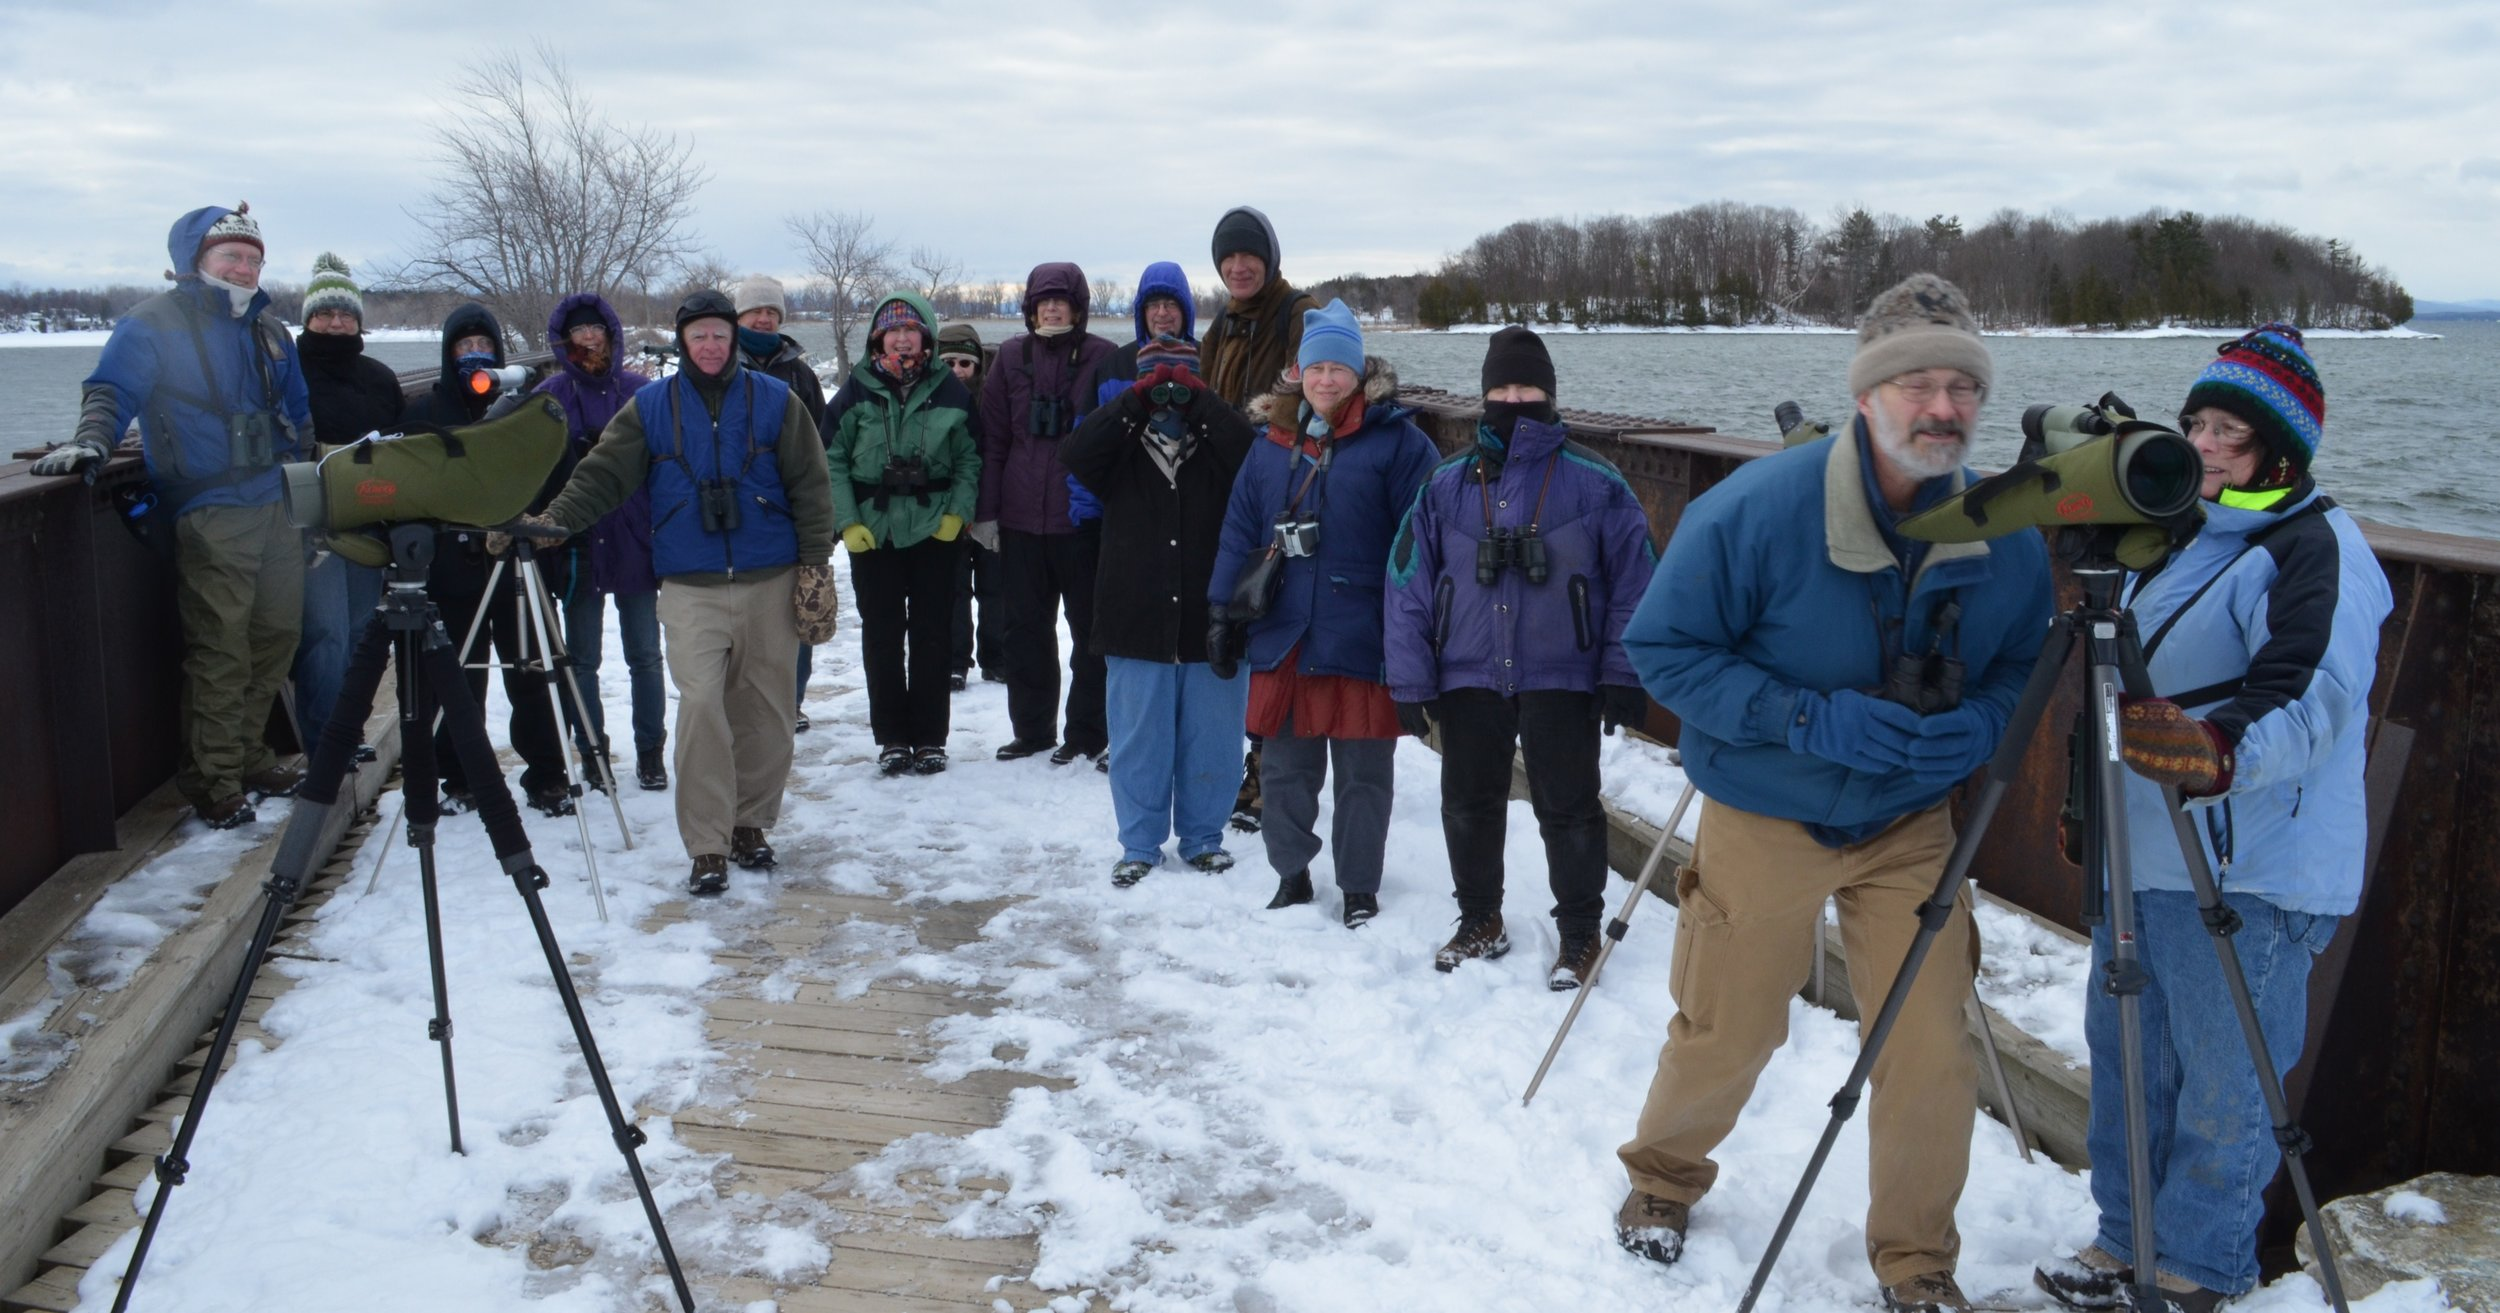 A Green Mountain Audubon Society field trip to the Colchester Causeway to view winter birds